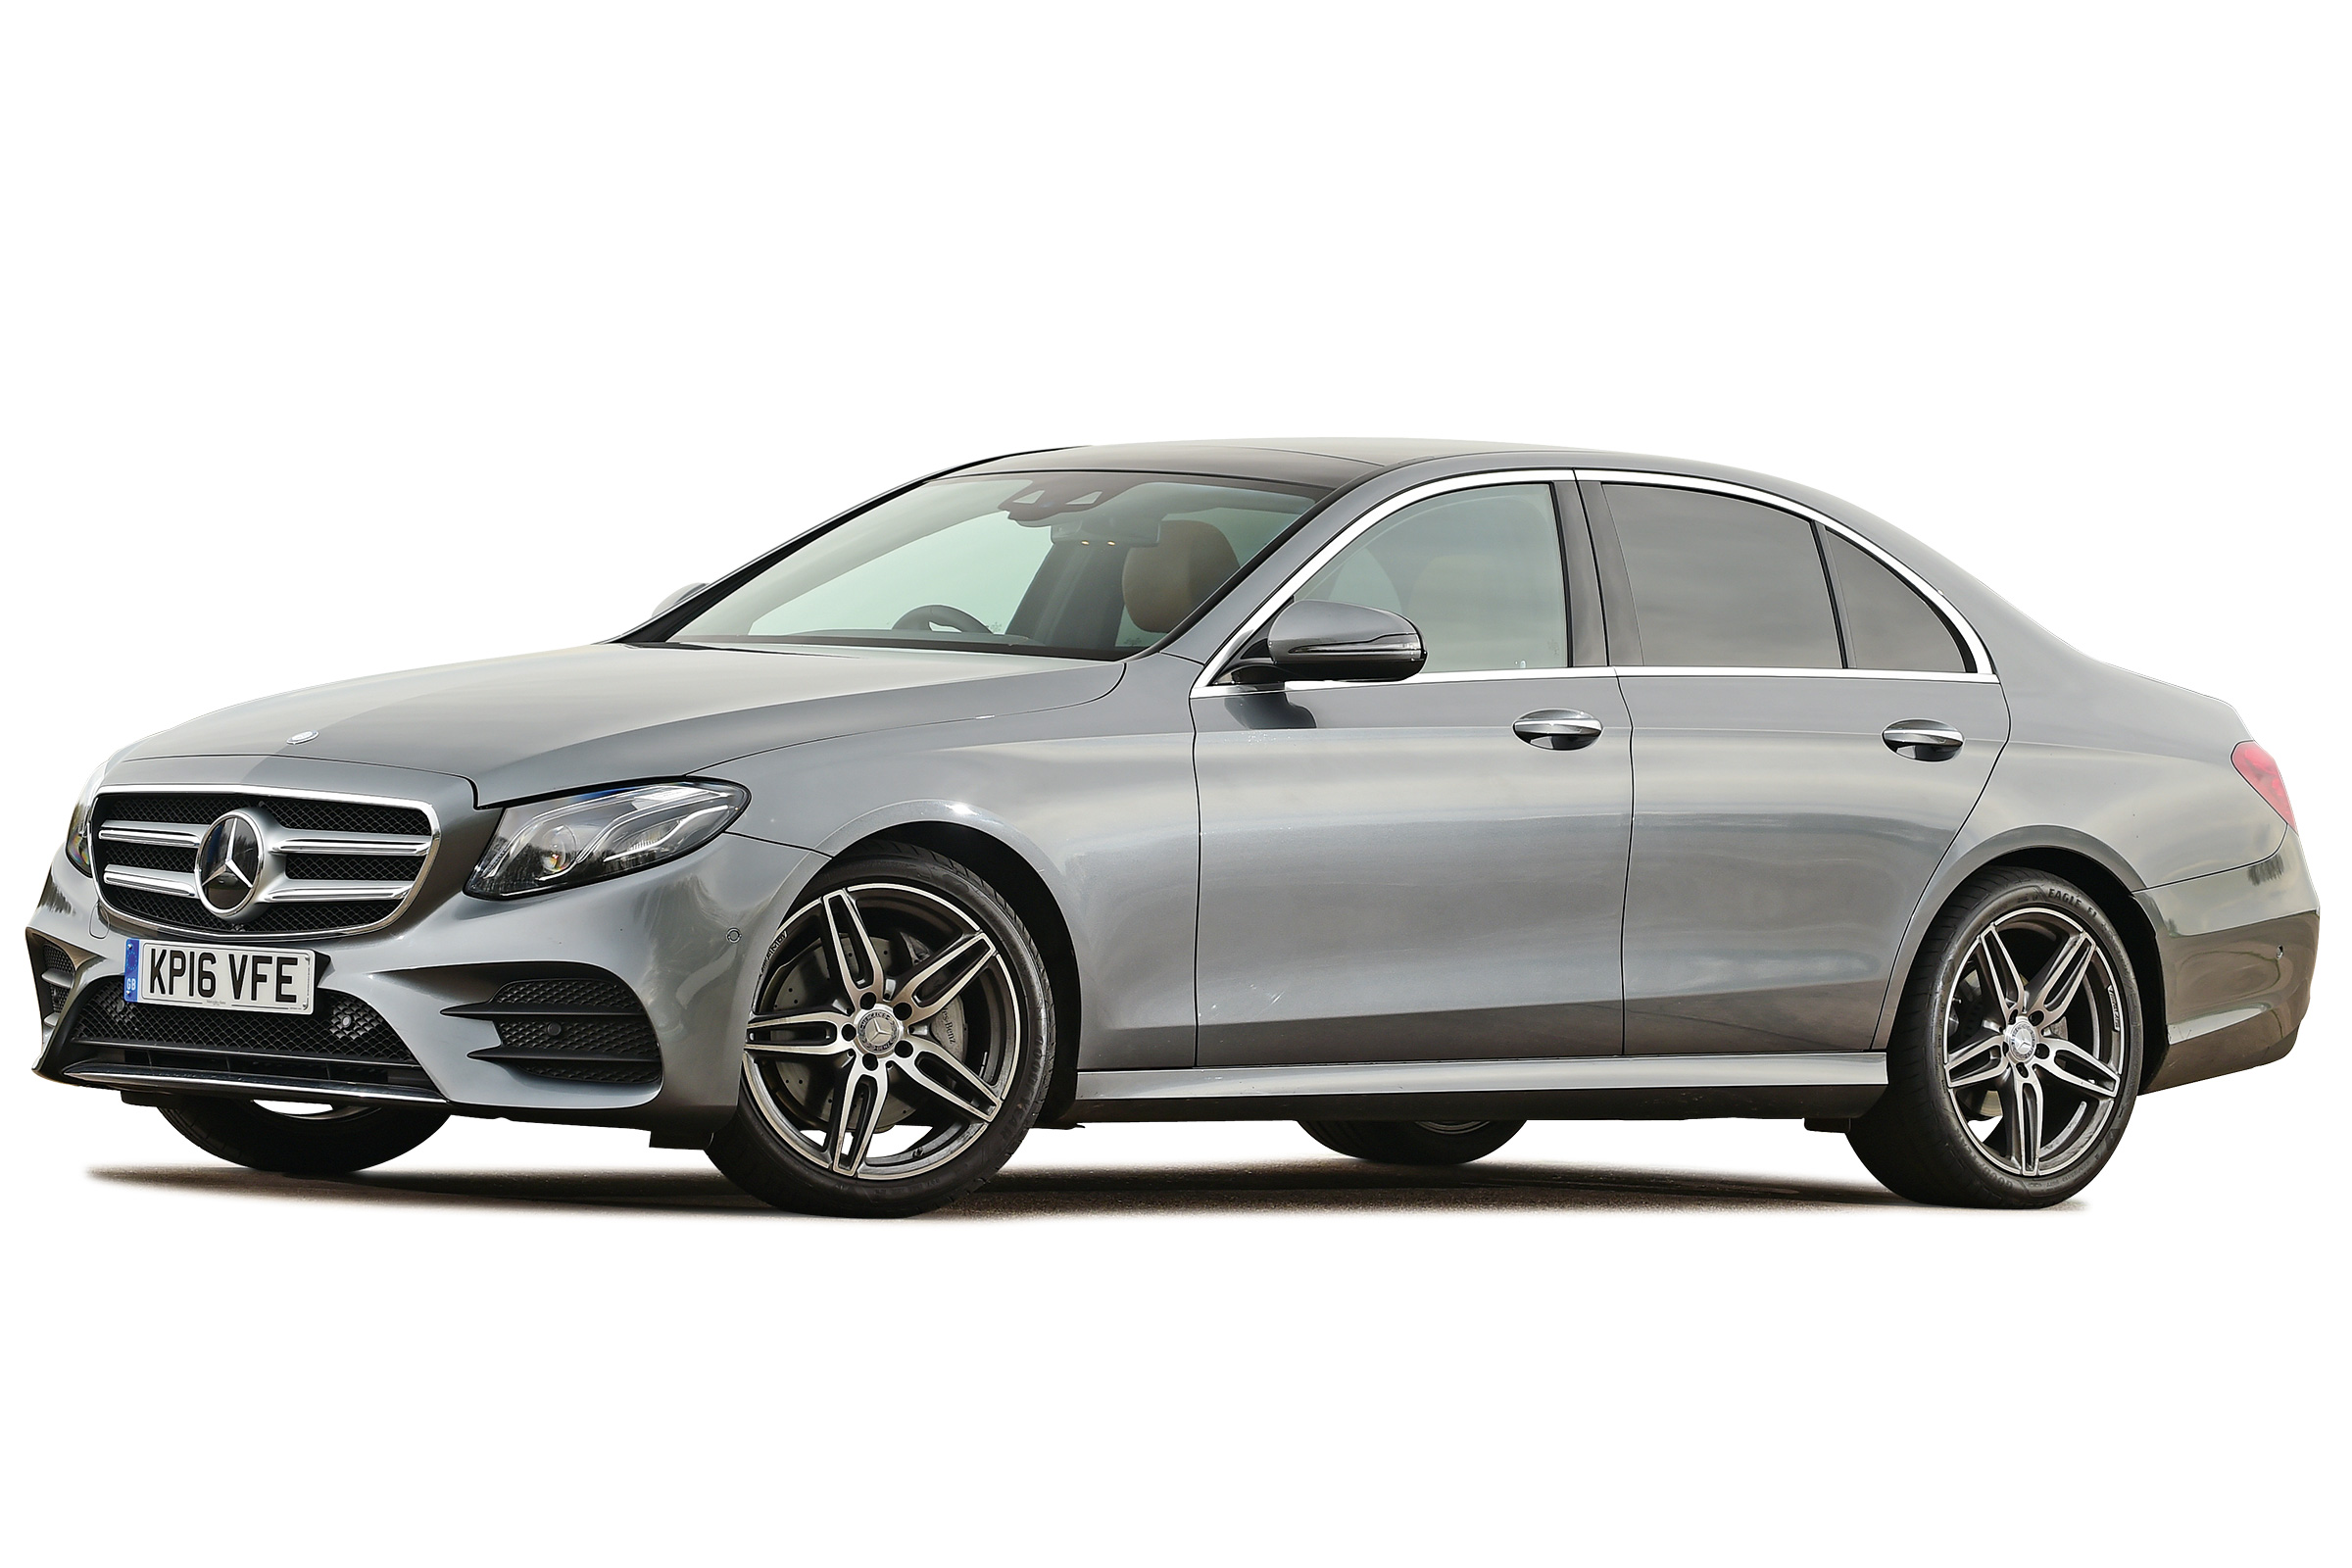 Saloon car image black and white download Best large executive cars revealed 2017 | Carbuyer image black and white download